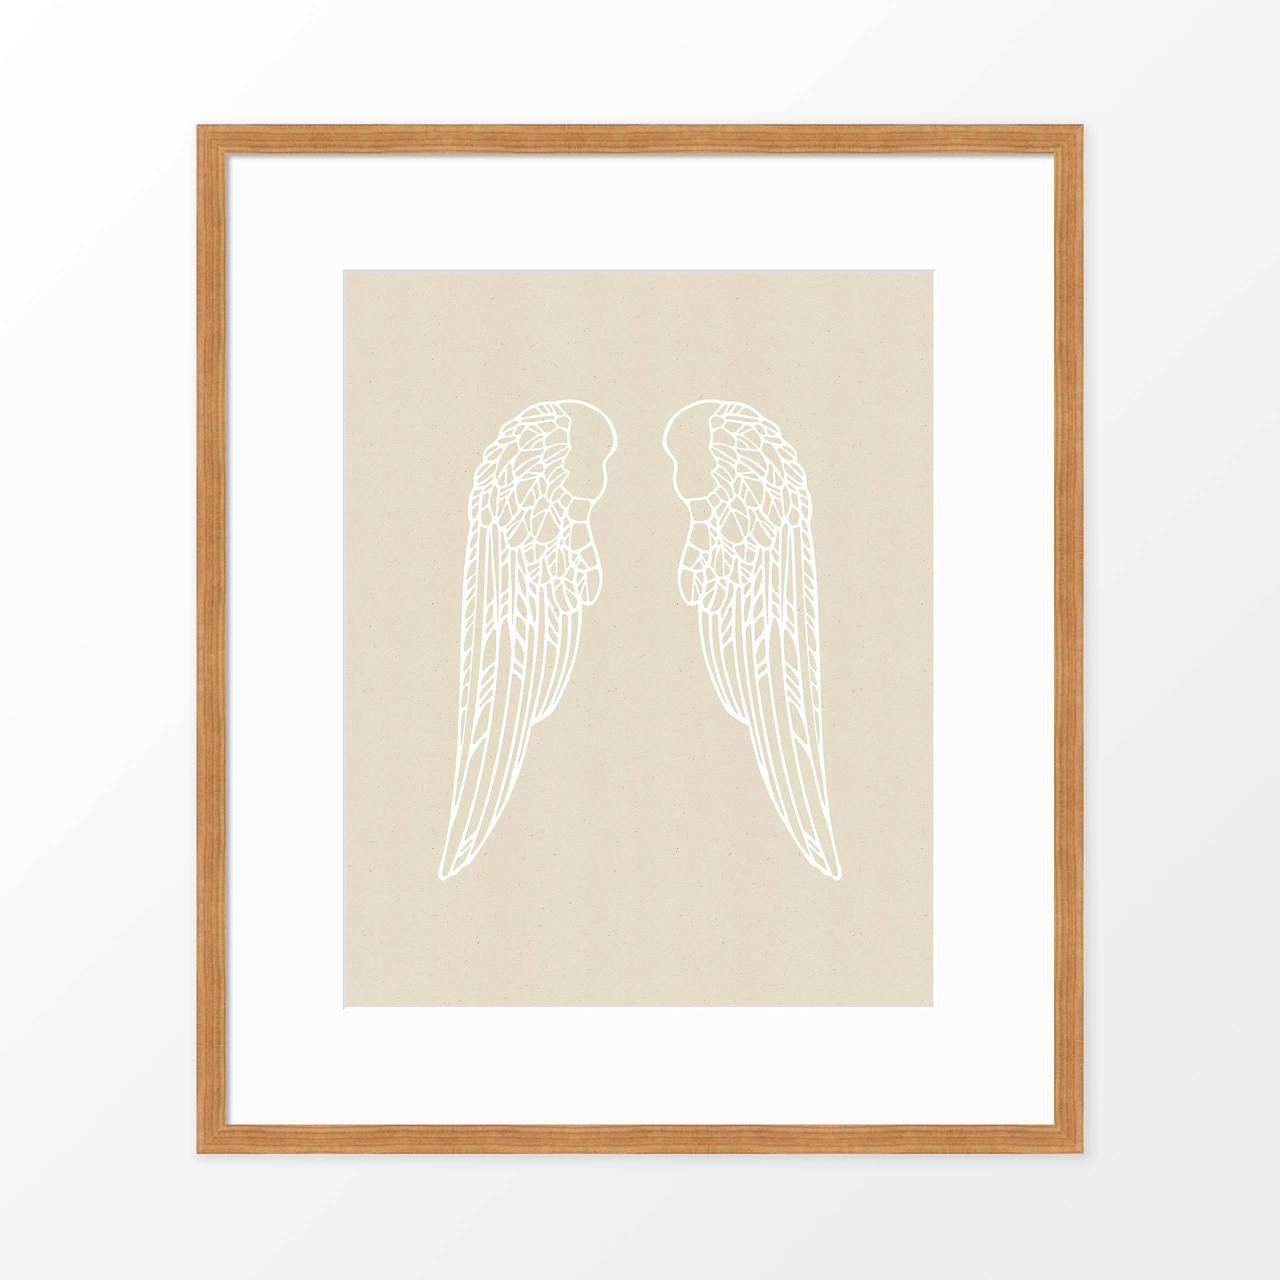 'Angel Wings' Art Print from The Printed Home